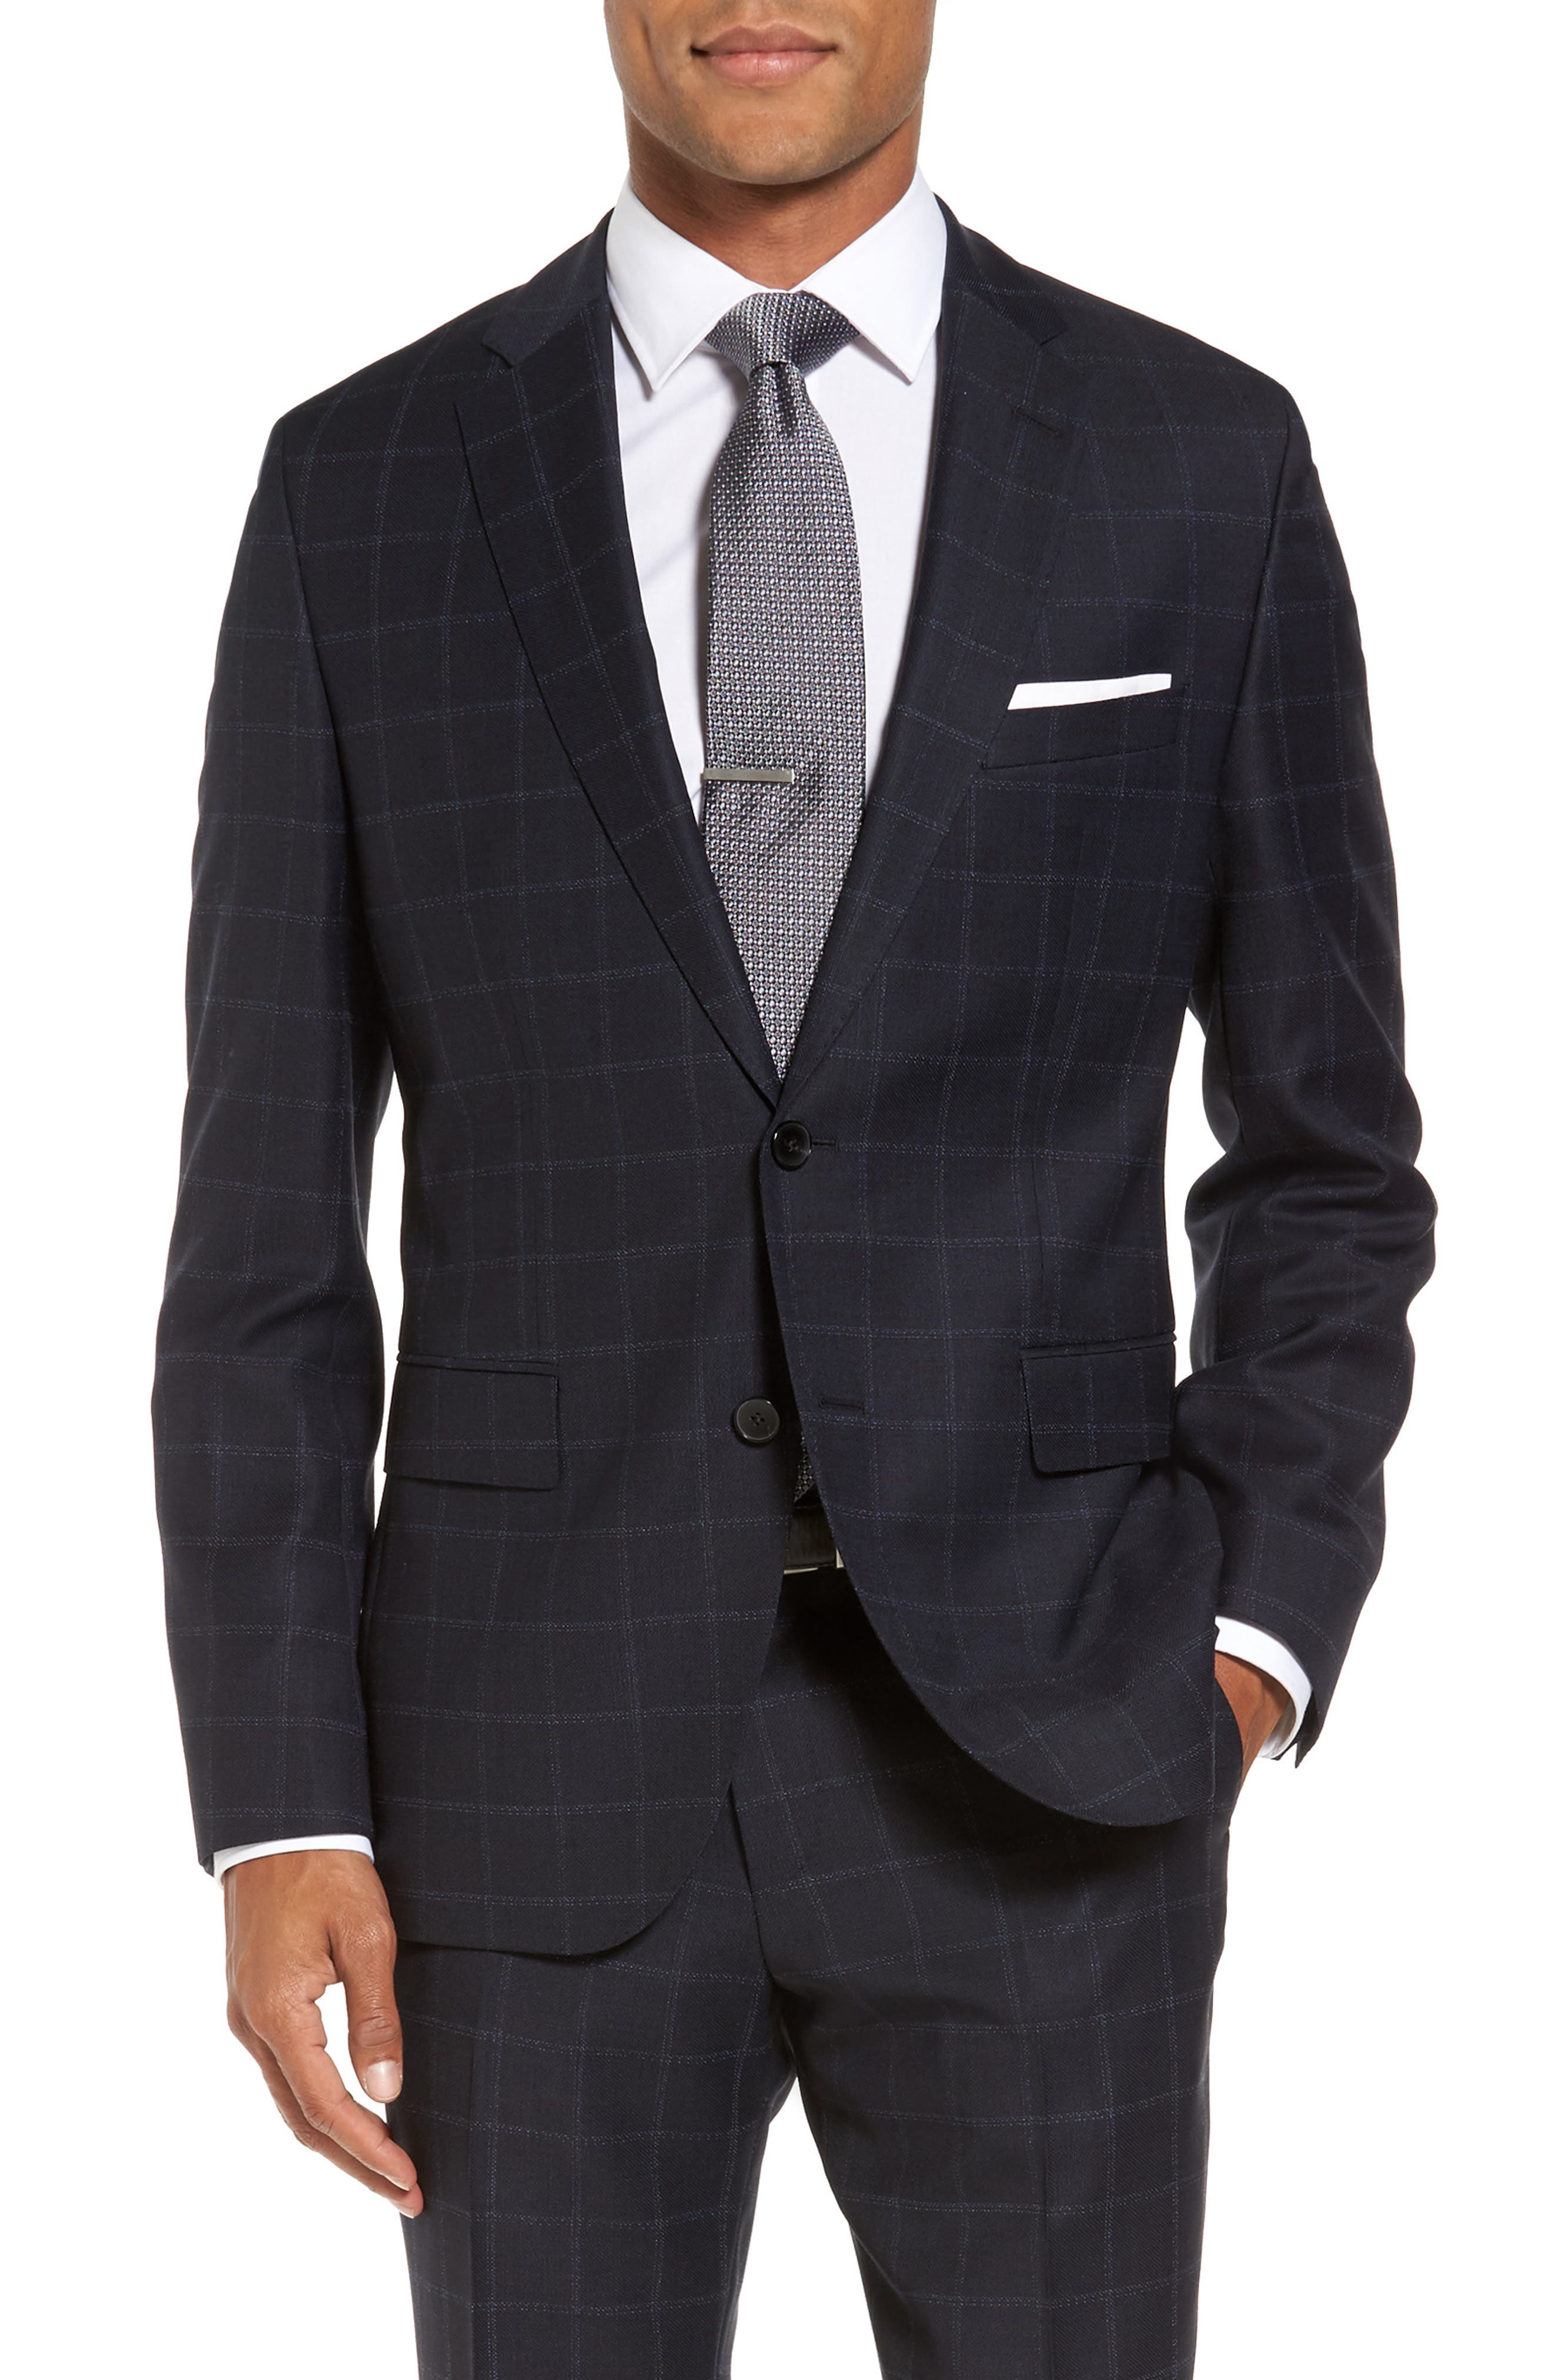 Johnstons/Lenon Classic Fit Windowpane Wool Suit,                             Alternate thumbnail 4, color,                             Navy